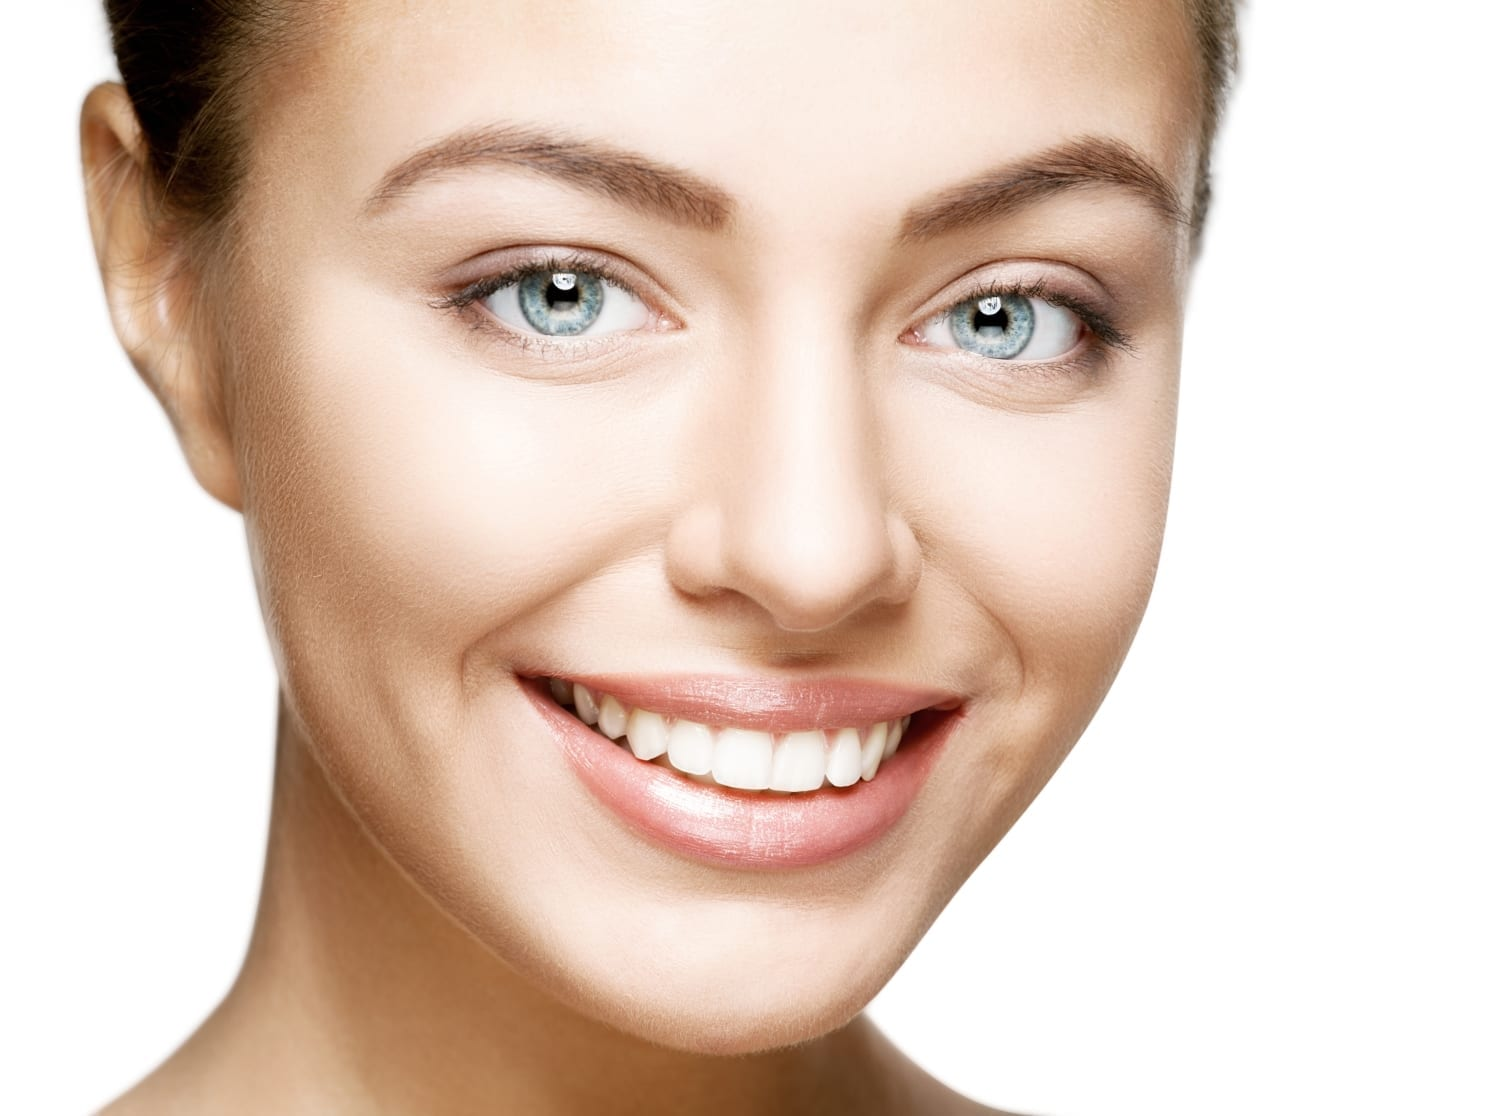 hydrafacial treatment - woman with clear skin